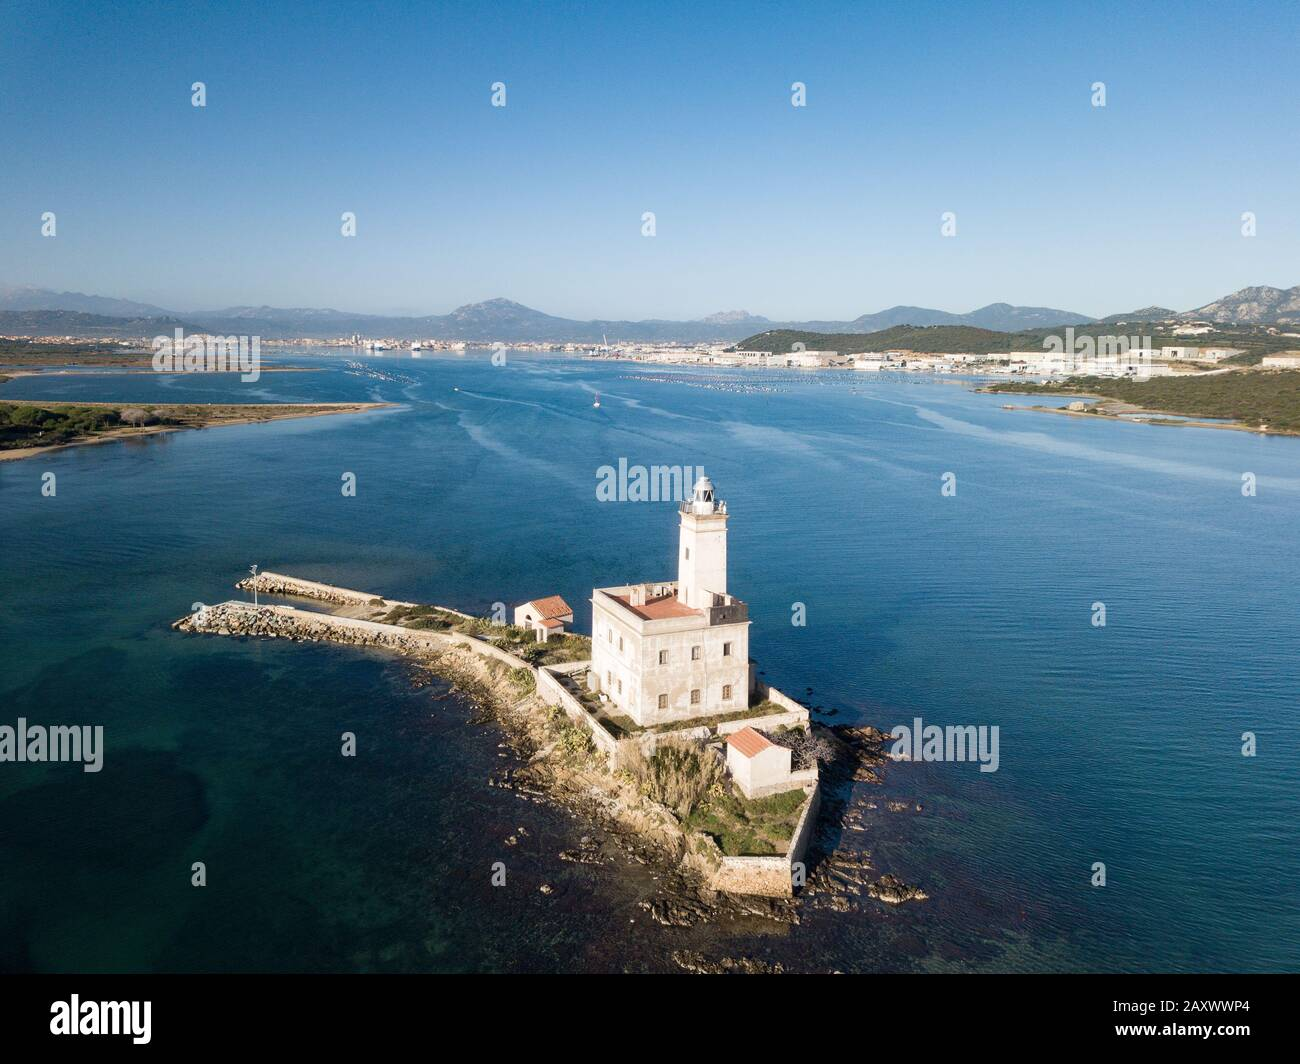 Aerial view of the Lighthouse in the Gulf of Olbia Stock Photo